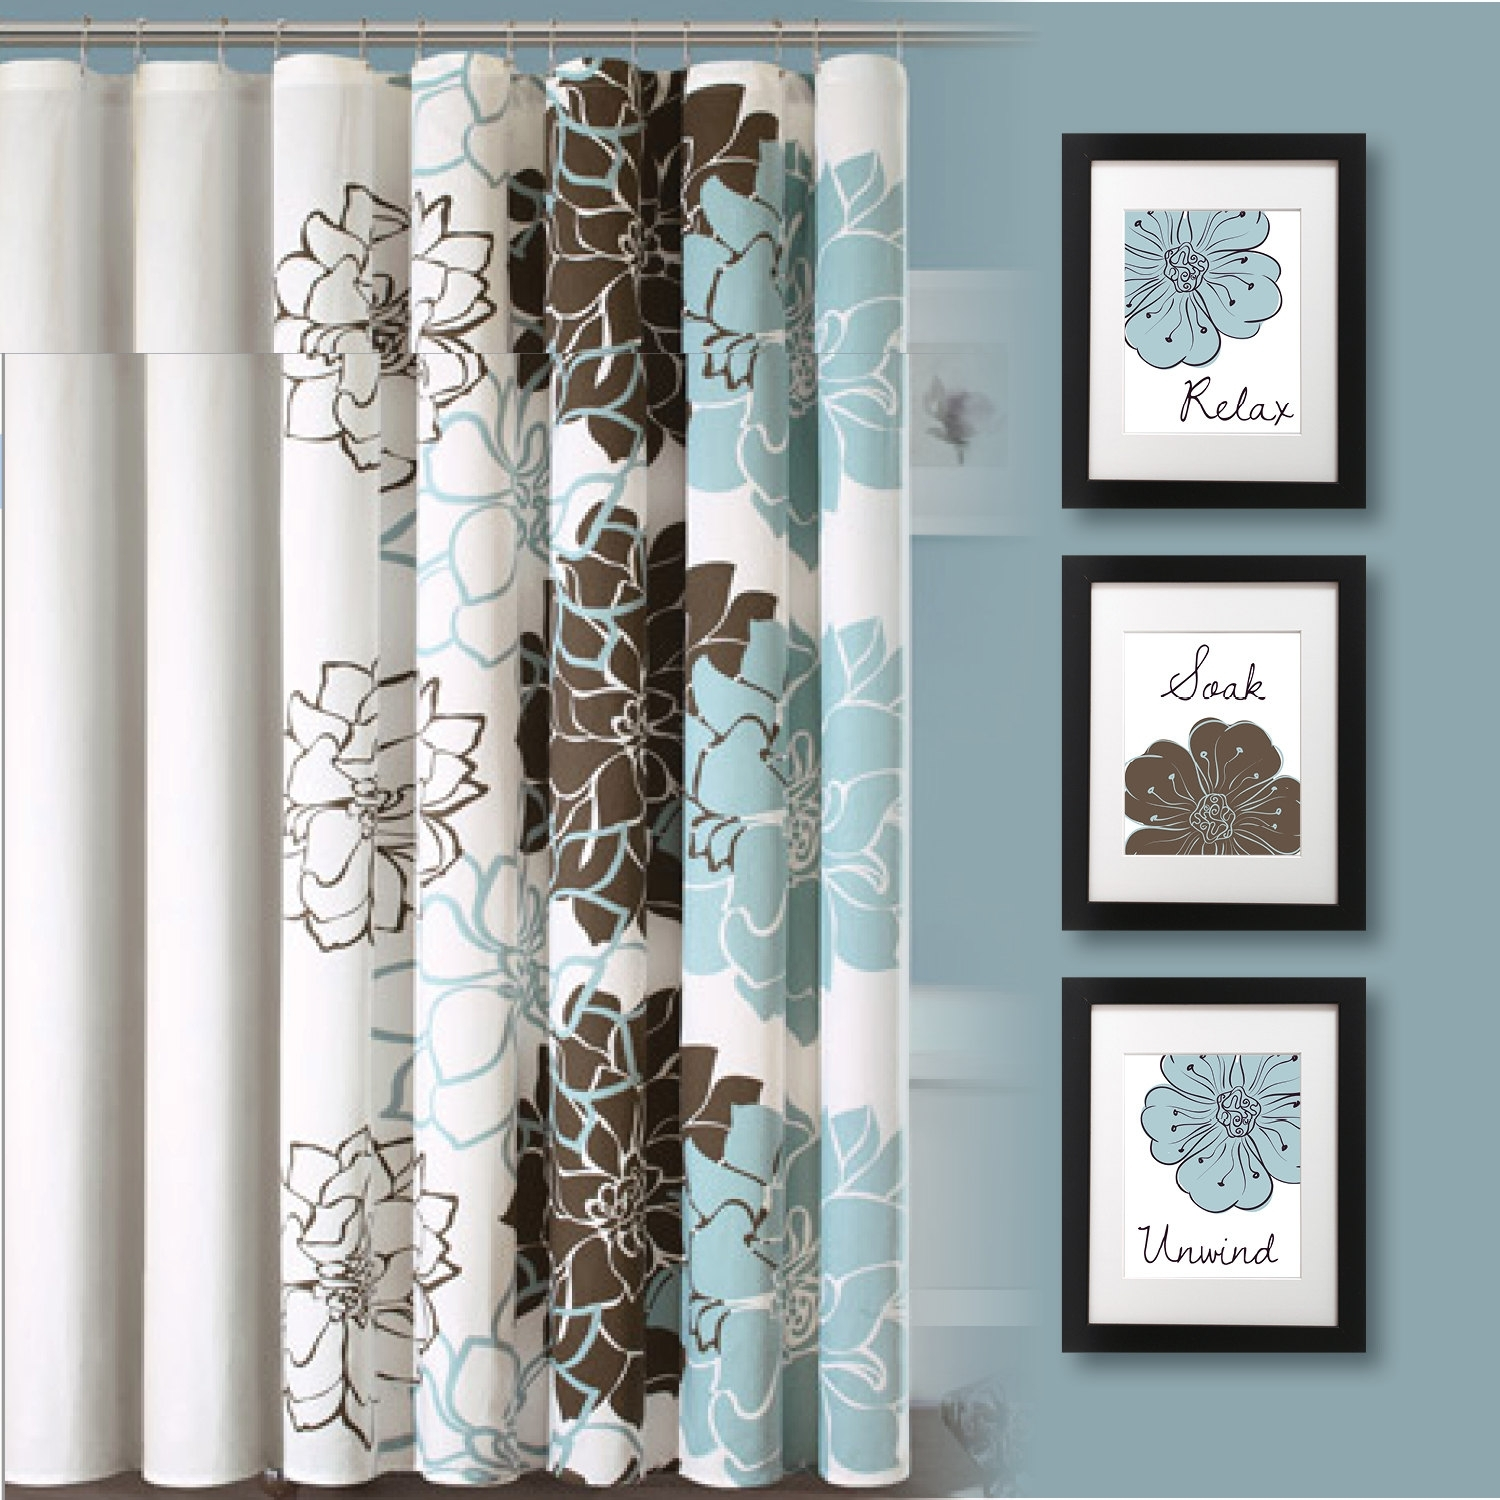 Bathroom Ideas : Blue And Brown Floral Print Bathroom Curtain Square With Regard To Current Bathroom Wall Art Decors (View 5 of 15)